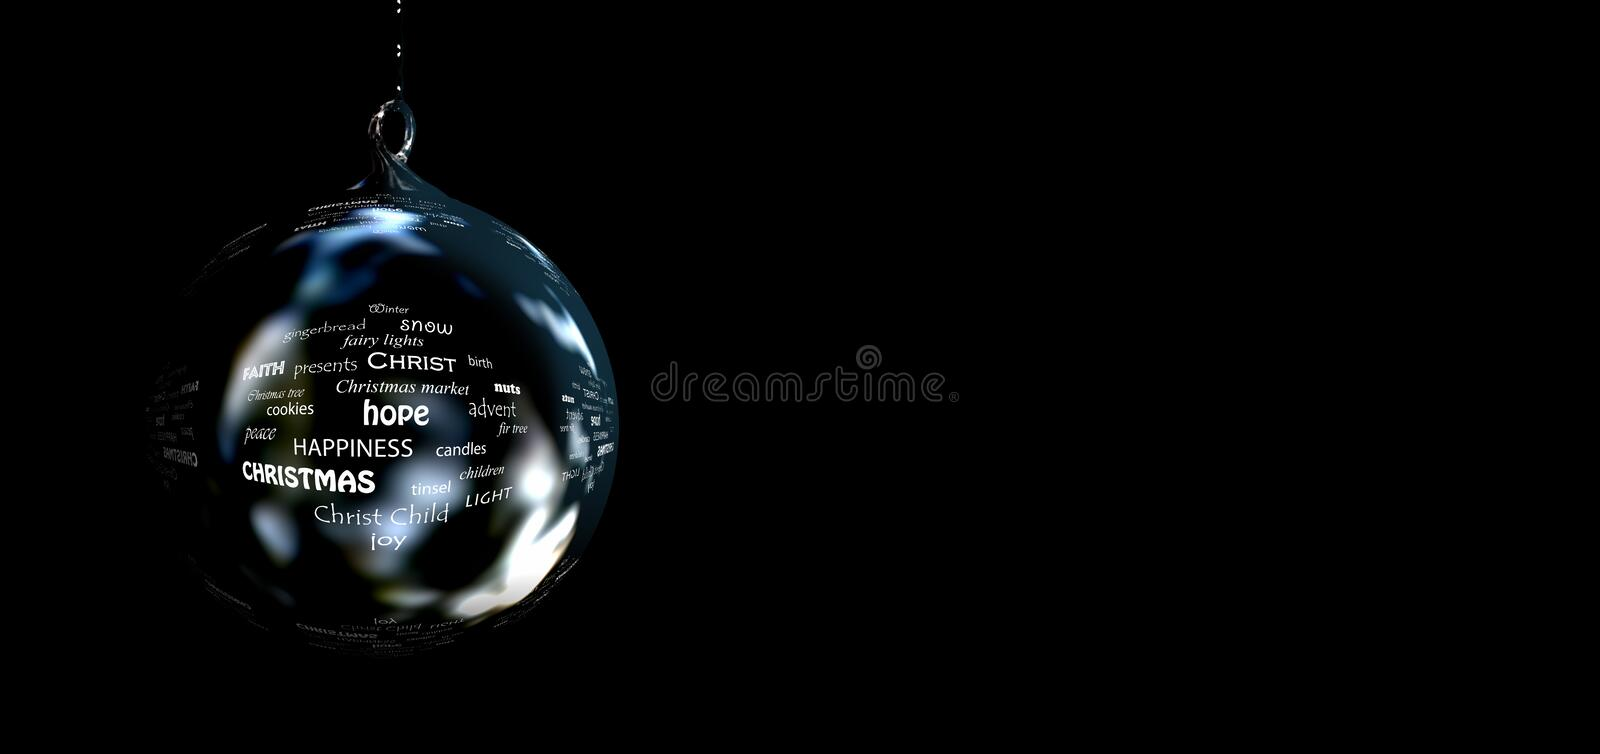 Reflection, Darkness, Sphere, Close Up stock image